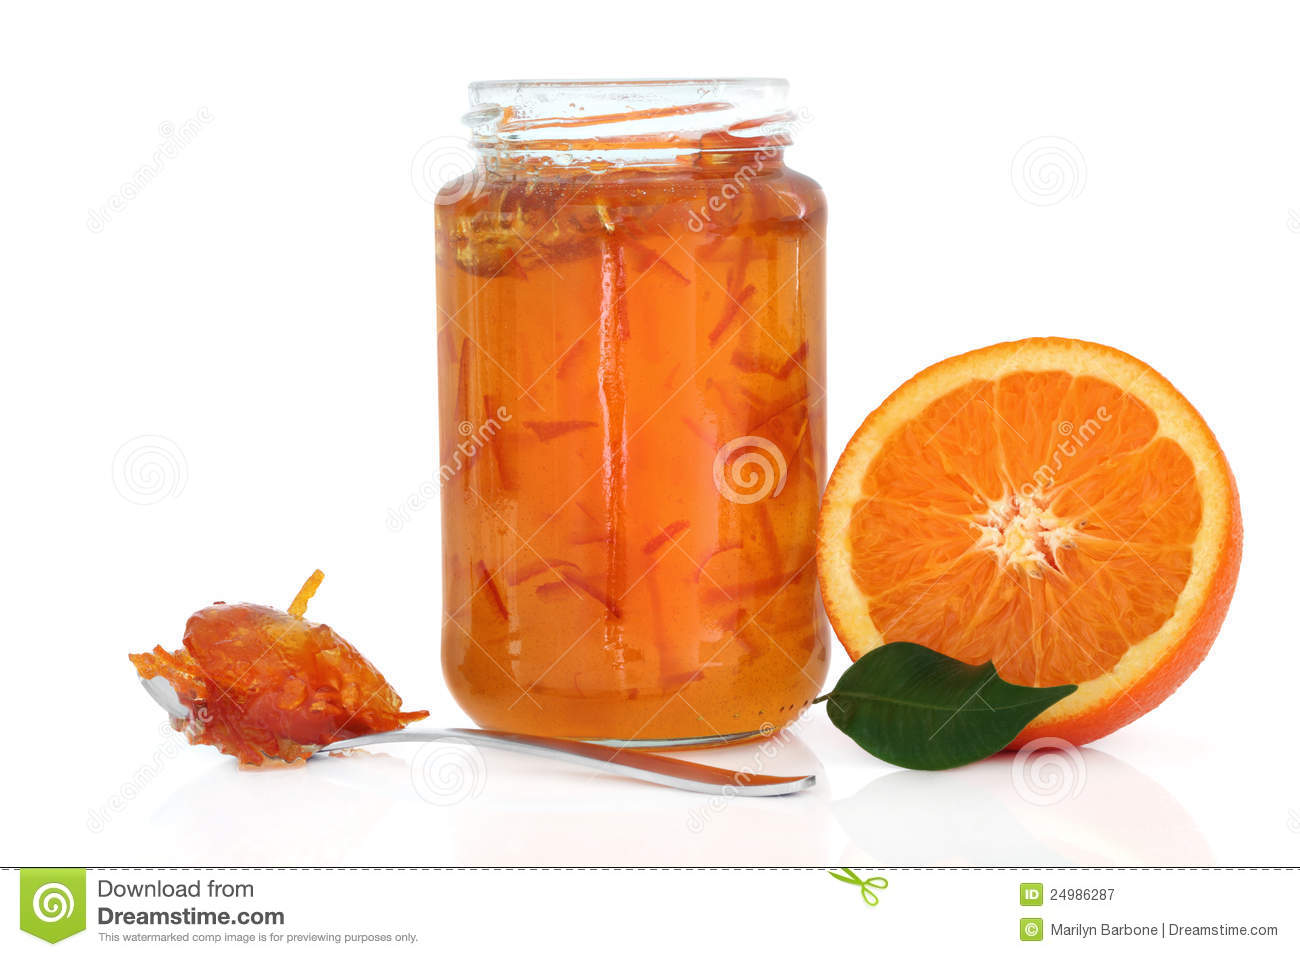 ... with half an orange, leaf and jam in a spoon over white background